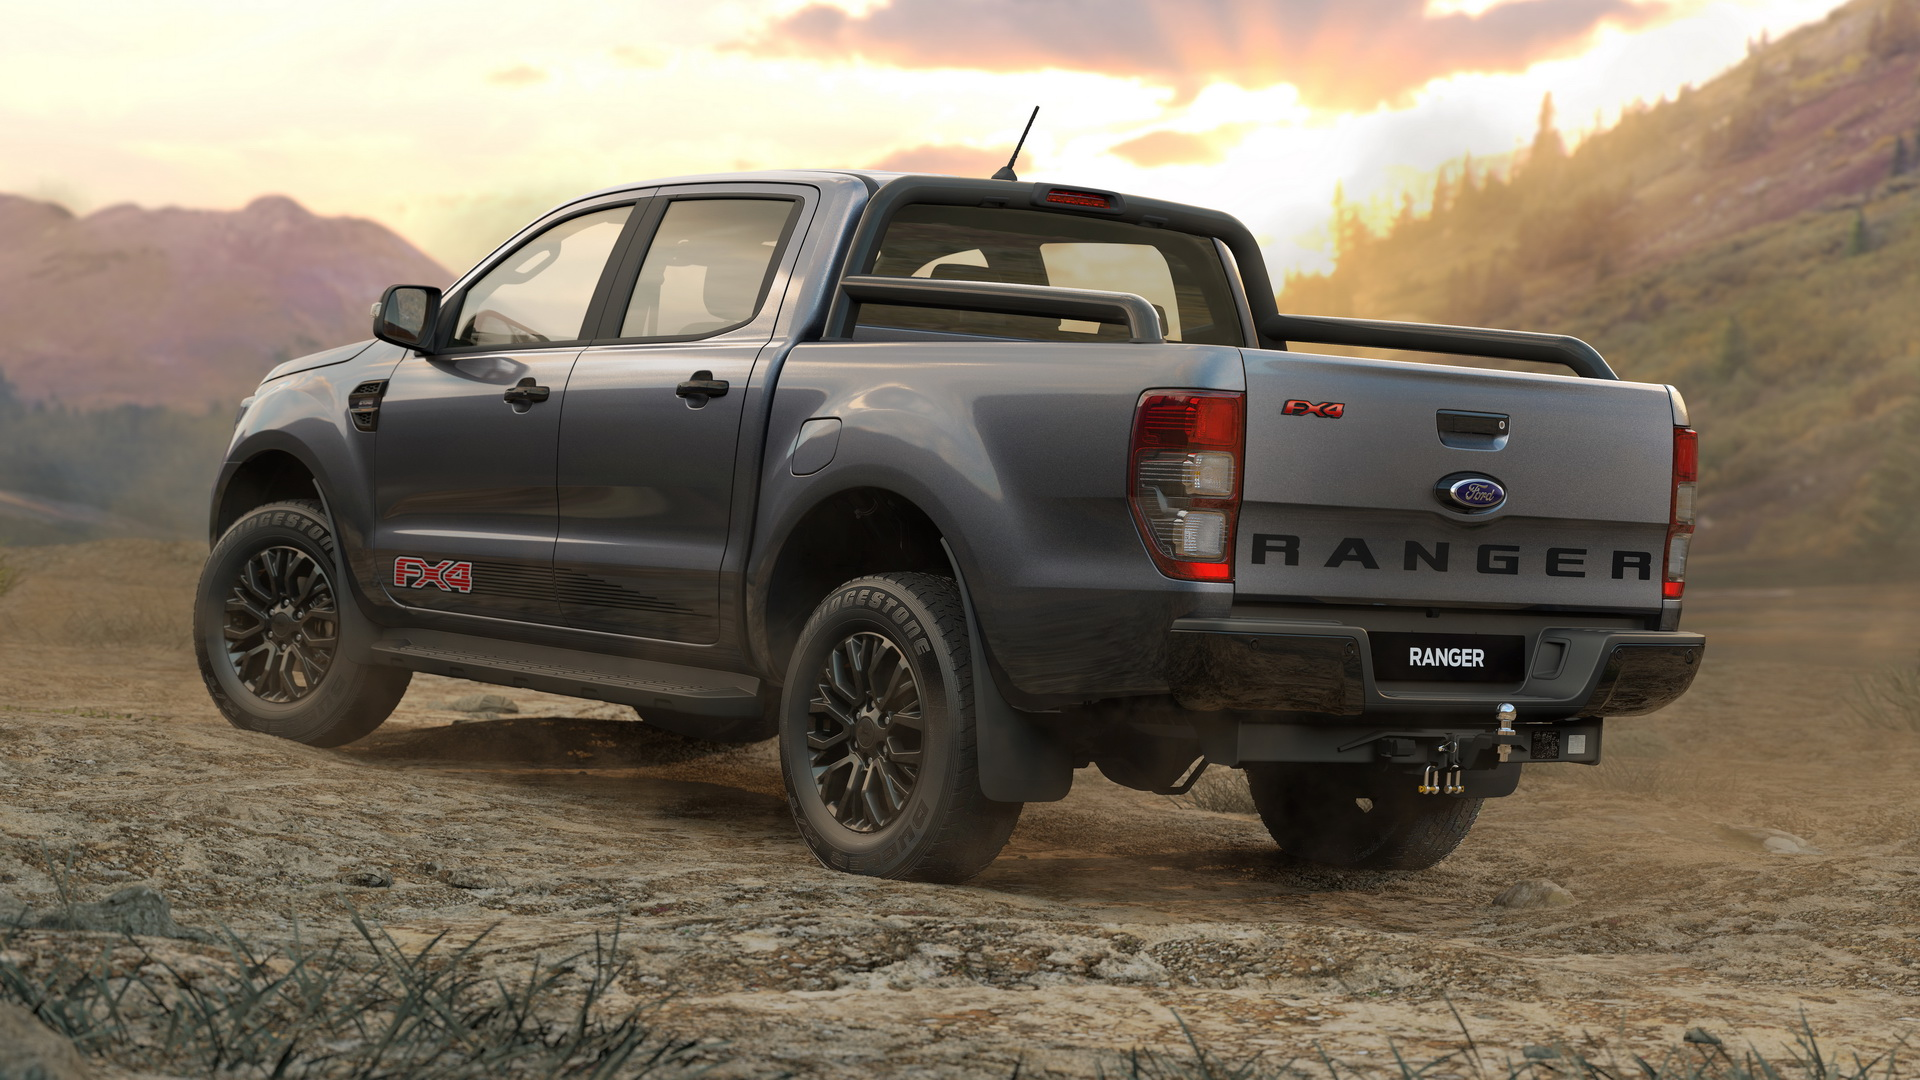 2020 Ford Ranger Welcomes Fx4 Special Edition In Australia Autoevolution